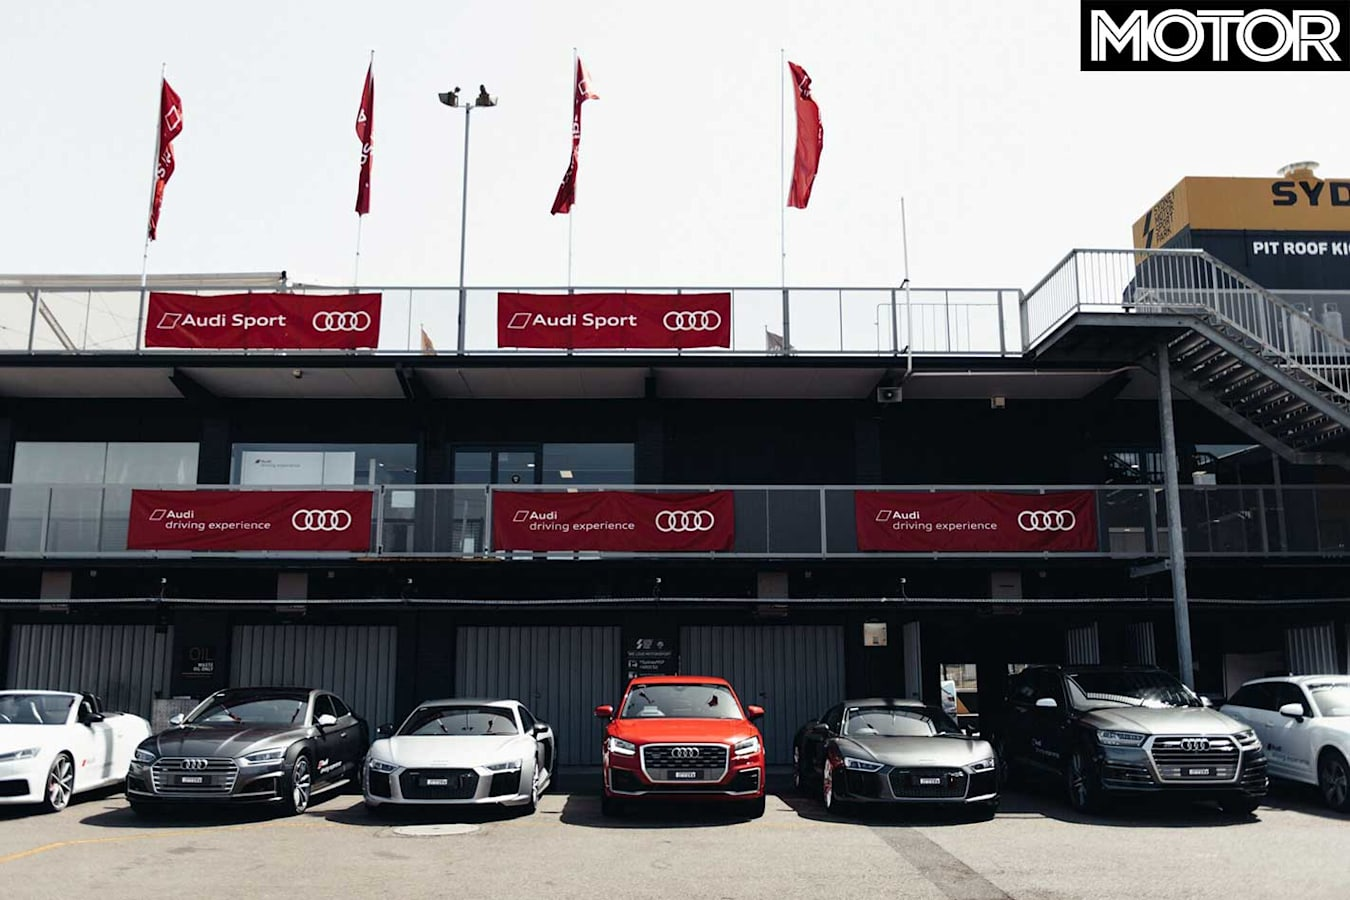 Audi Advanced Driving Experience Line Up Jpg